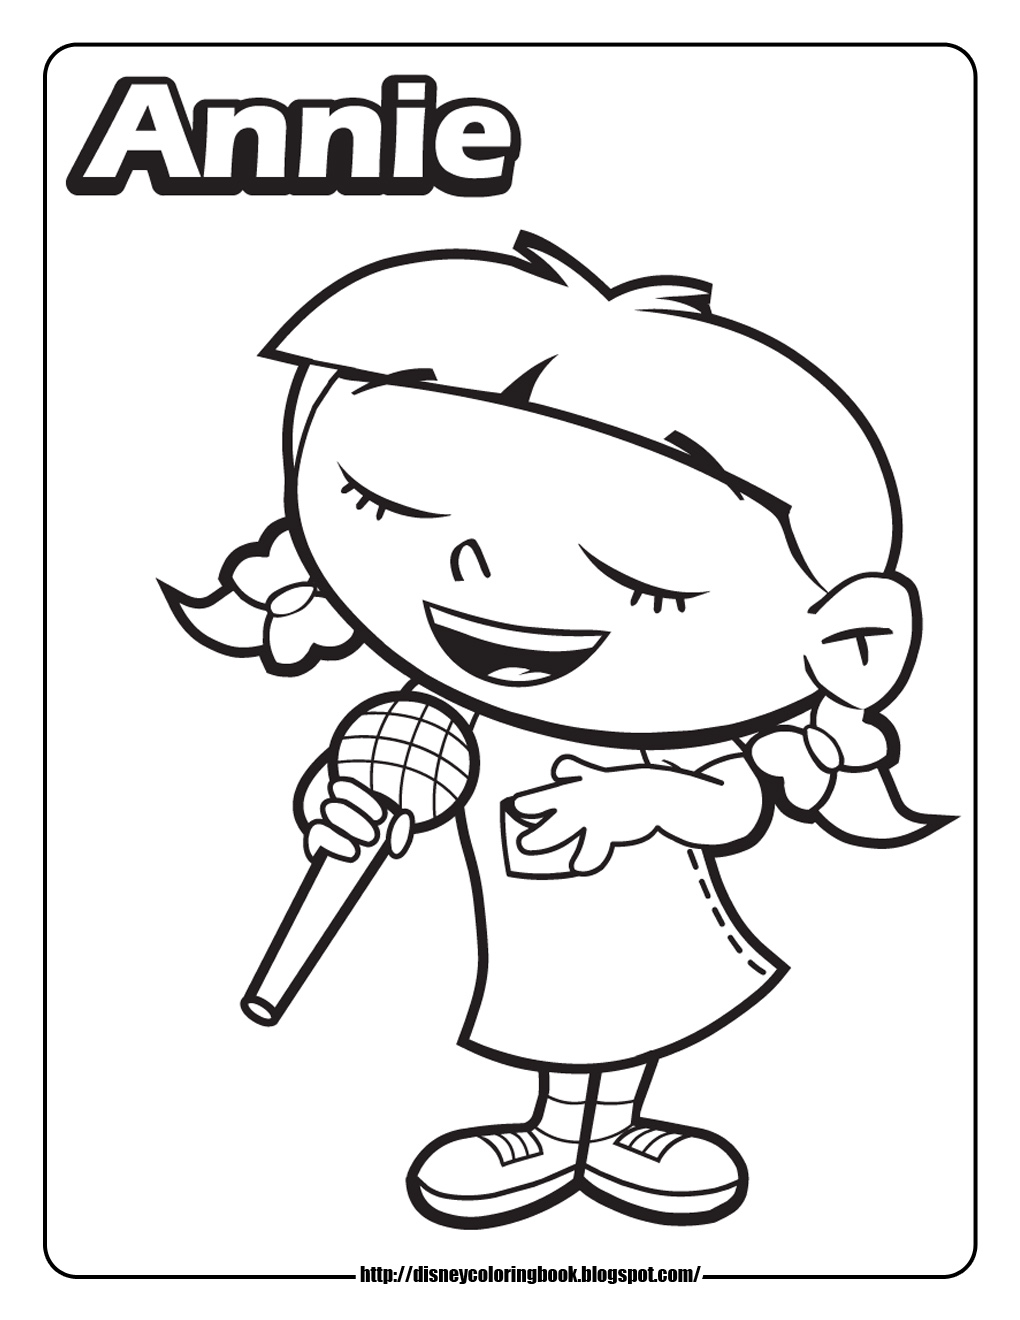 little einsteins online coloring pages - photo #5